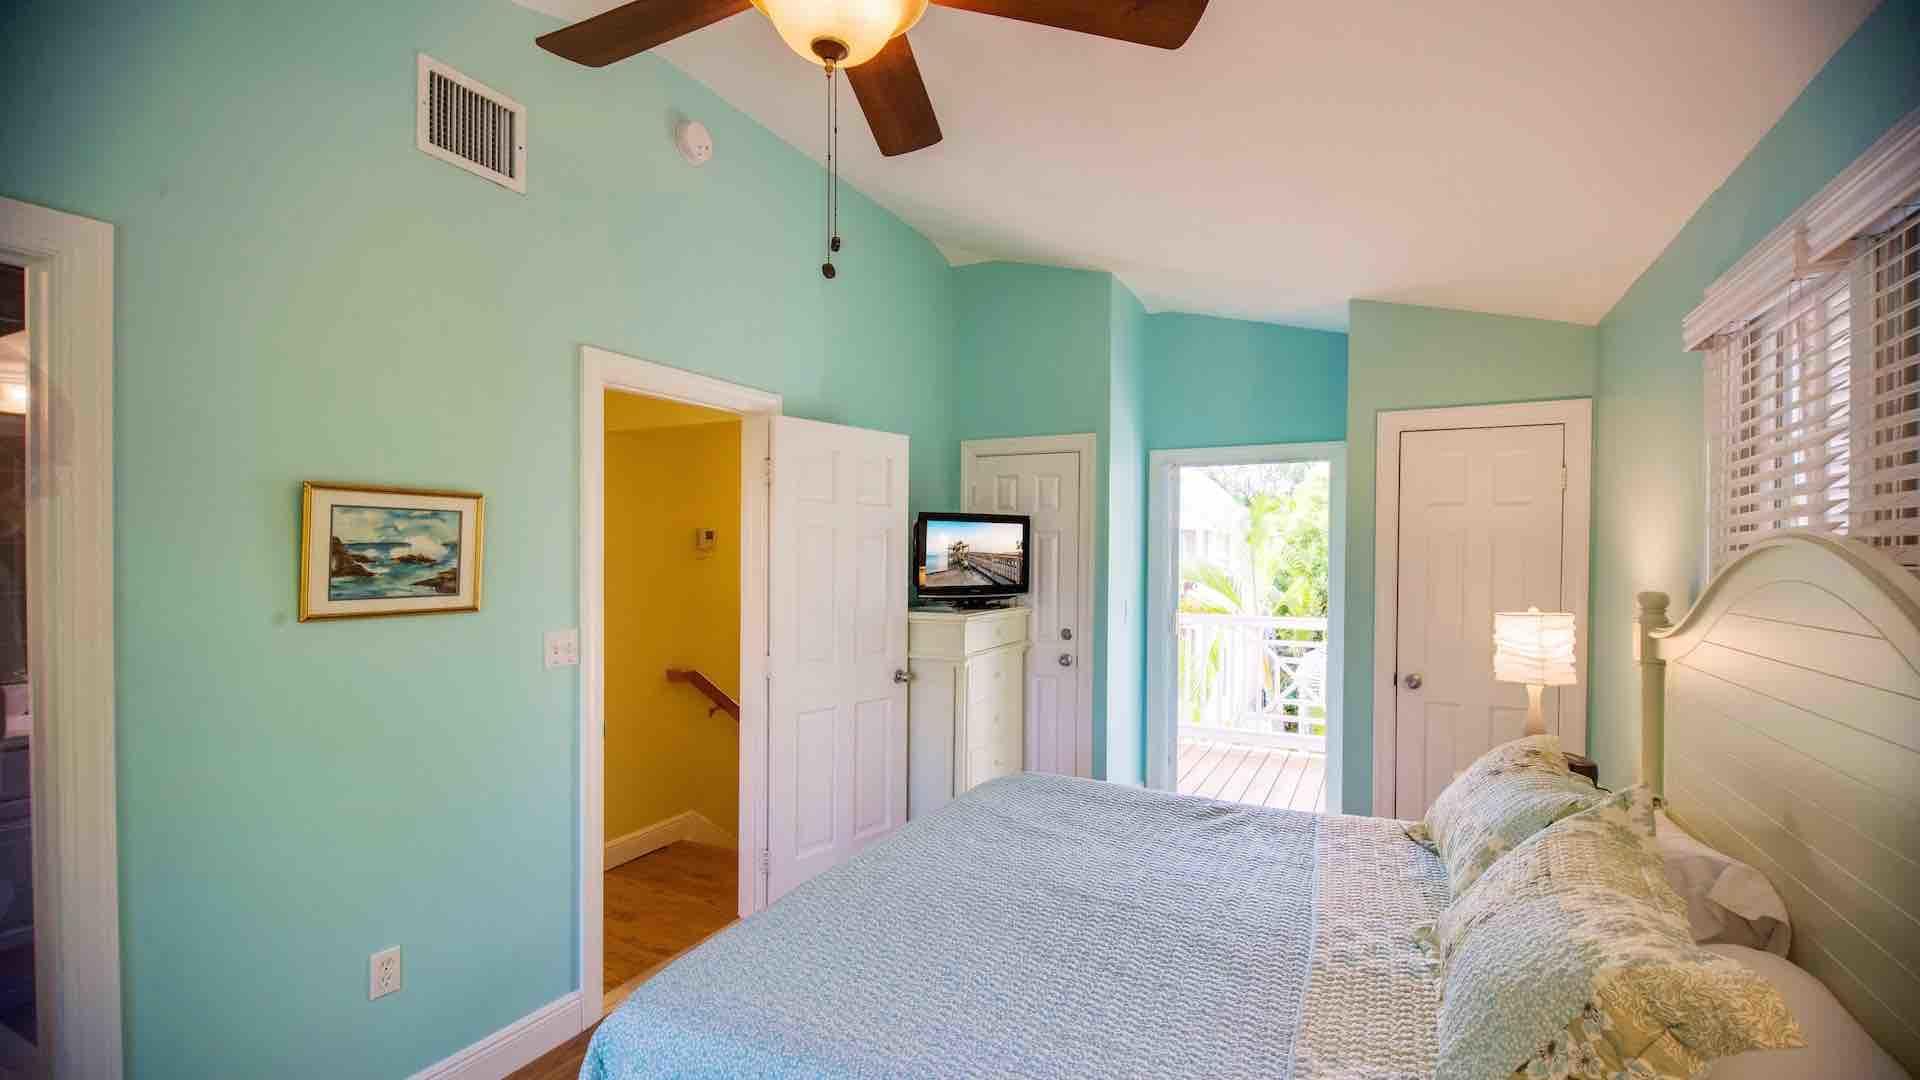 The first master bedroom features a king bed and includes a flat screen TV...